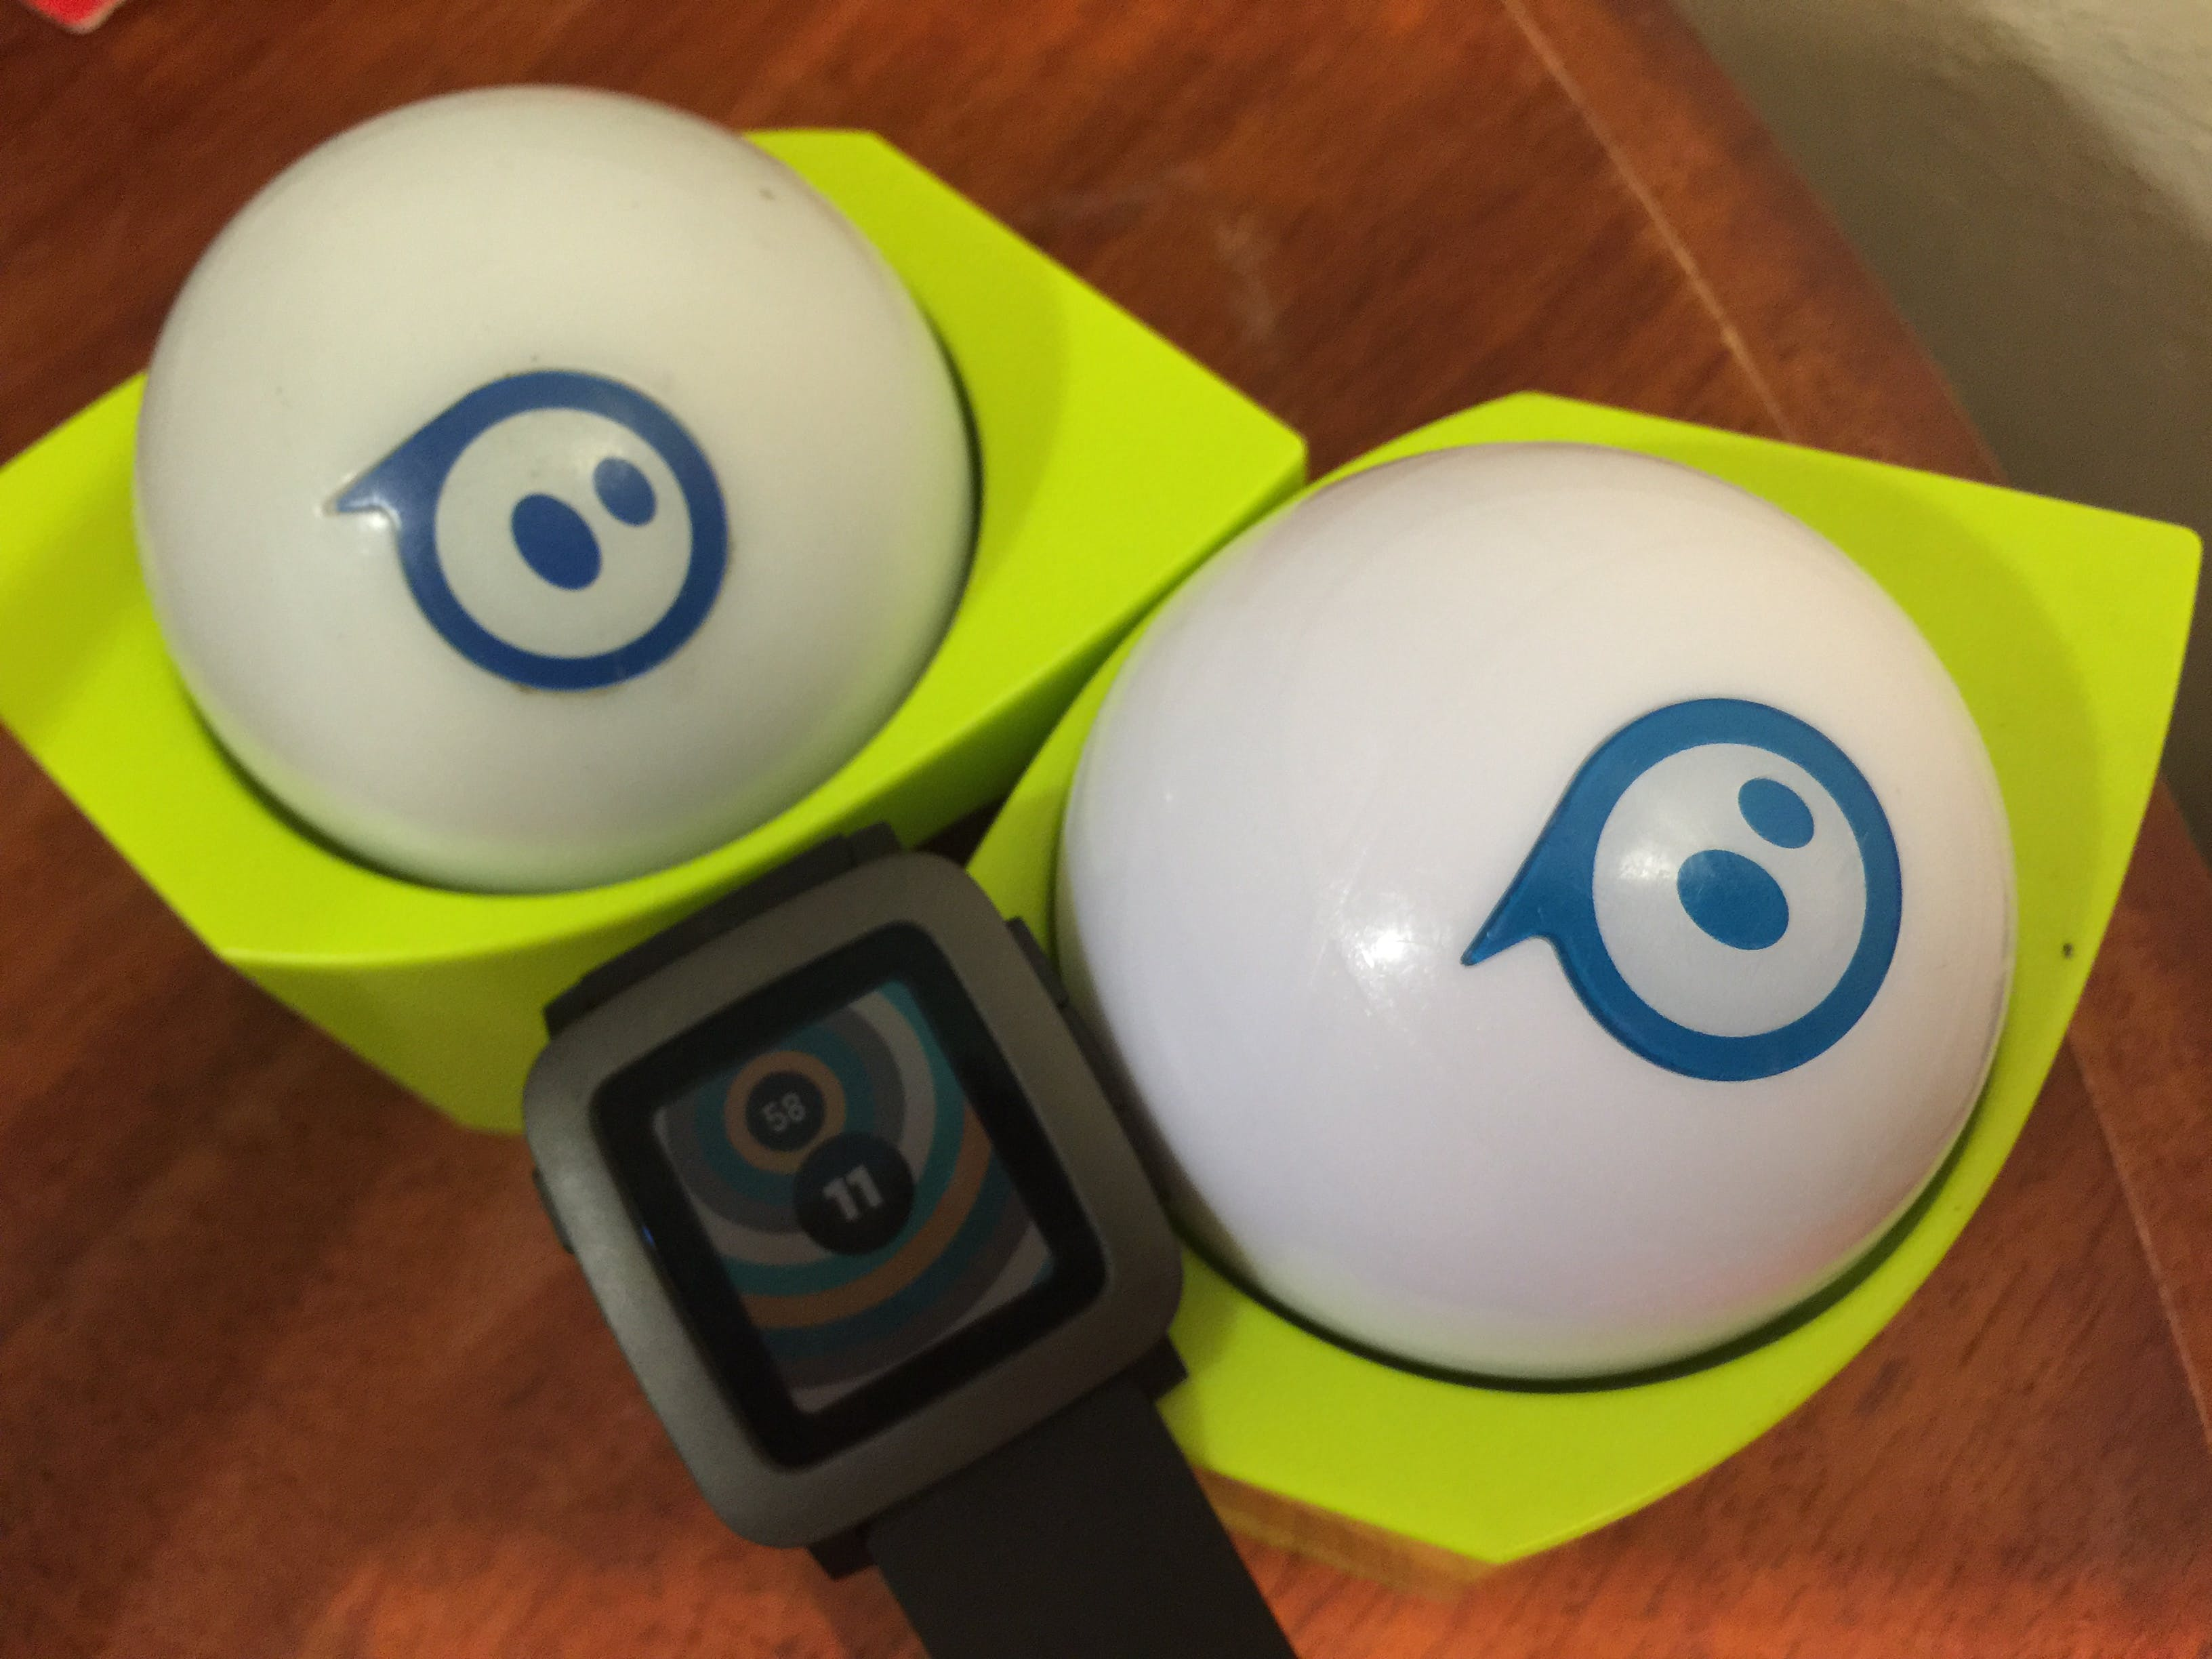 Pebble meets Sphero